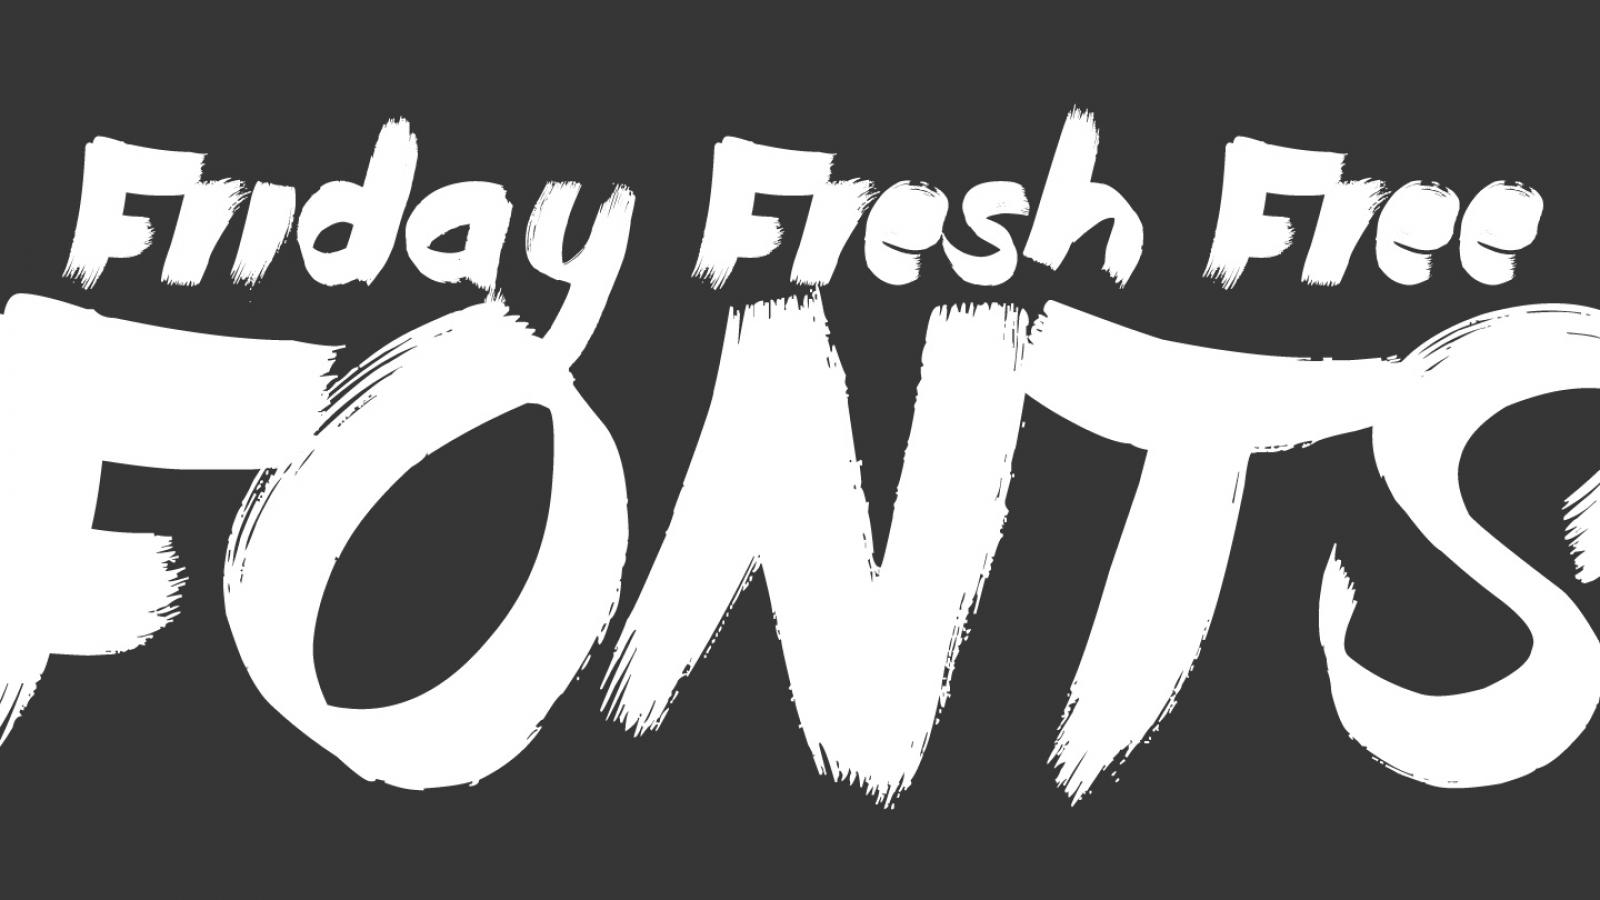 Friday Fresh Free Fonts - Showcase, Modum, Born Wild